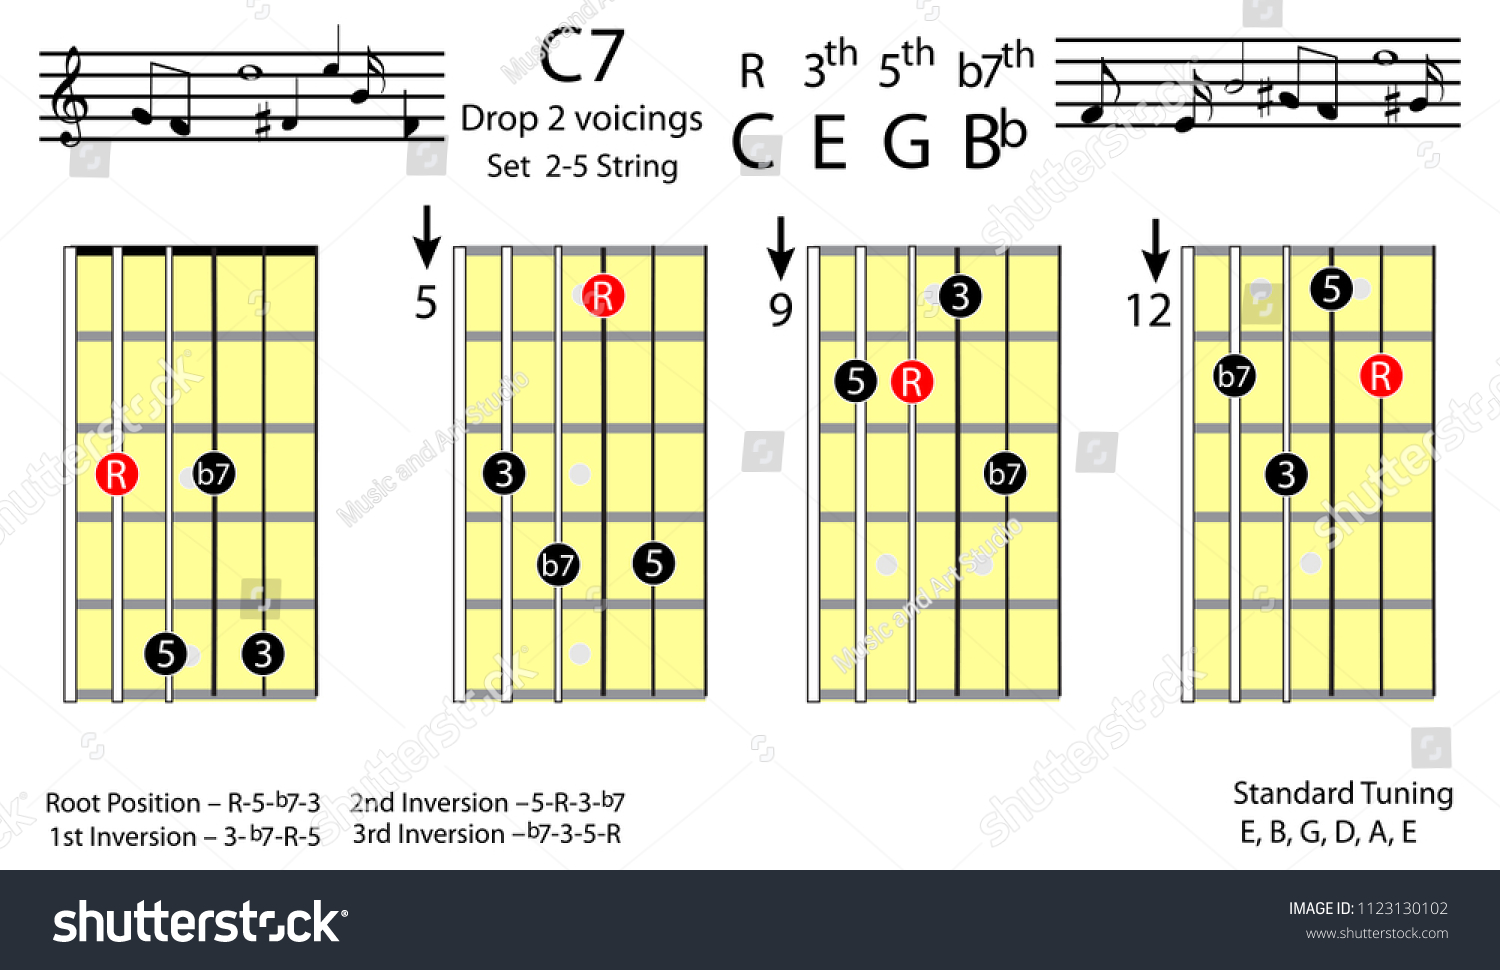 Guitar Chords C Dominant 7 Drop 2 Voicing Stock Vector Royalty Free